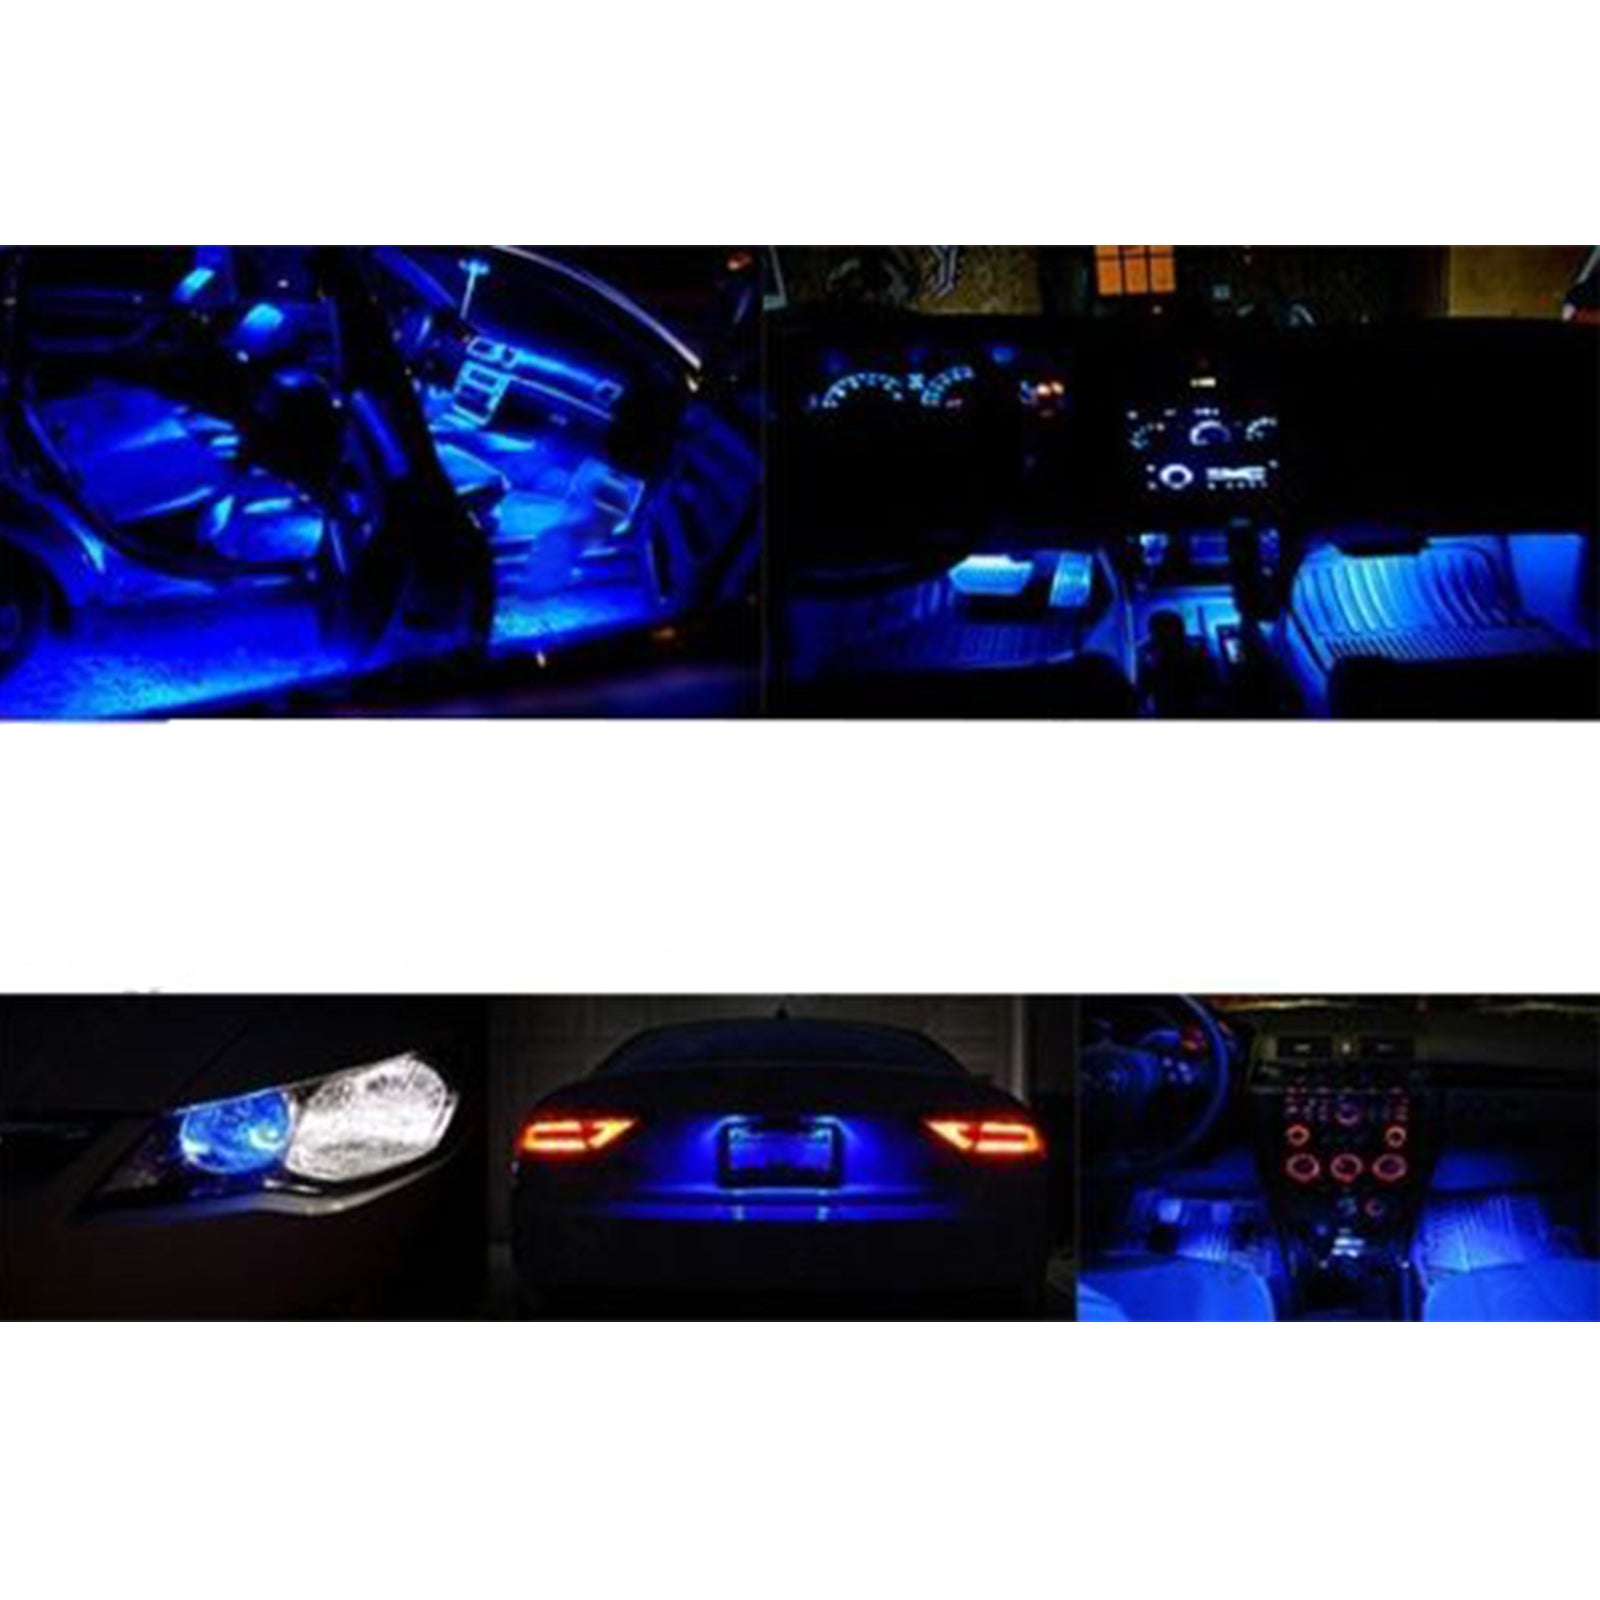 2009 2015 Honda Pilot 13x Interior Lights White Blue Led Fog Light Wiring Harness Package Kit